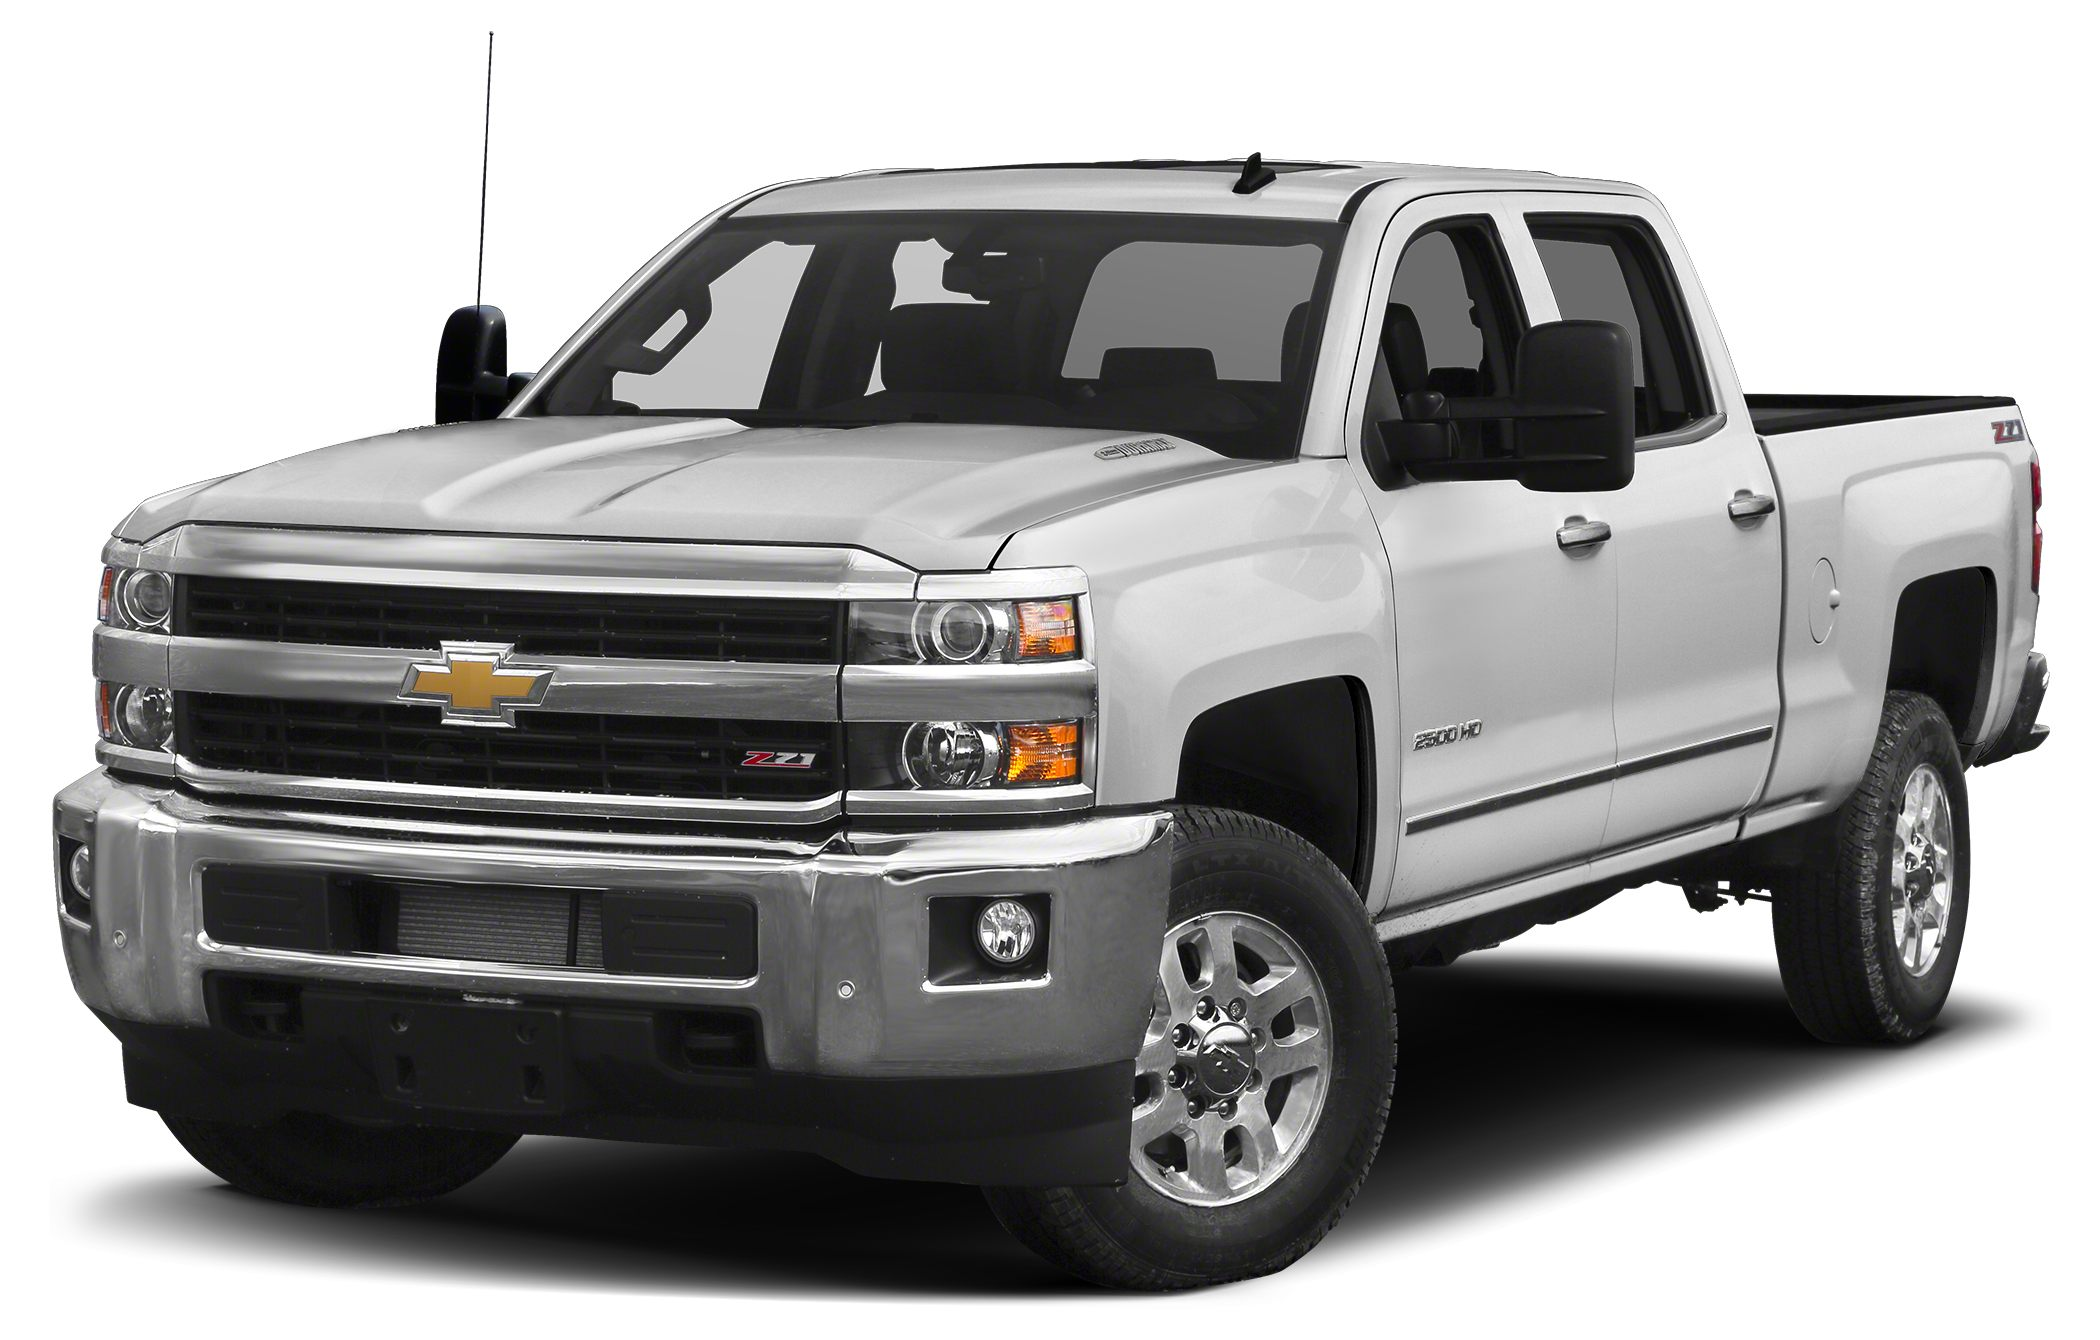 2018 Chevrolet Silverado 2500HD LTZ Miles 5Color Summit White Stock 180218 VIN 1GC1KWEG7JF14